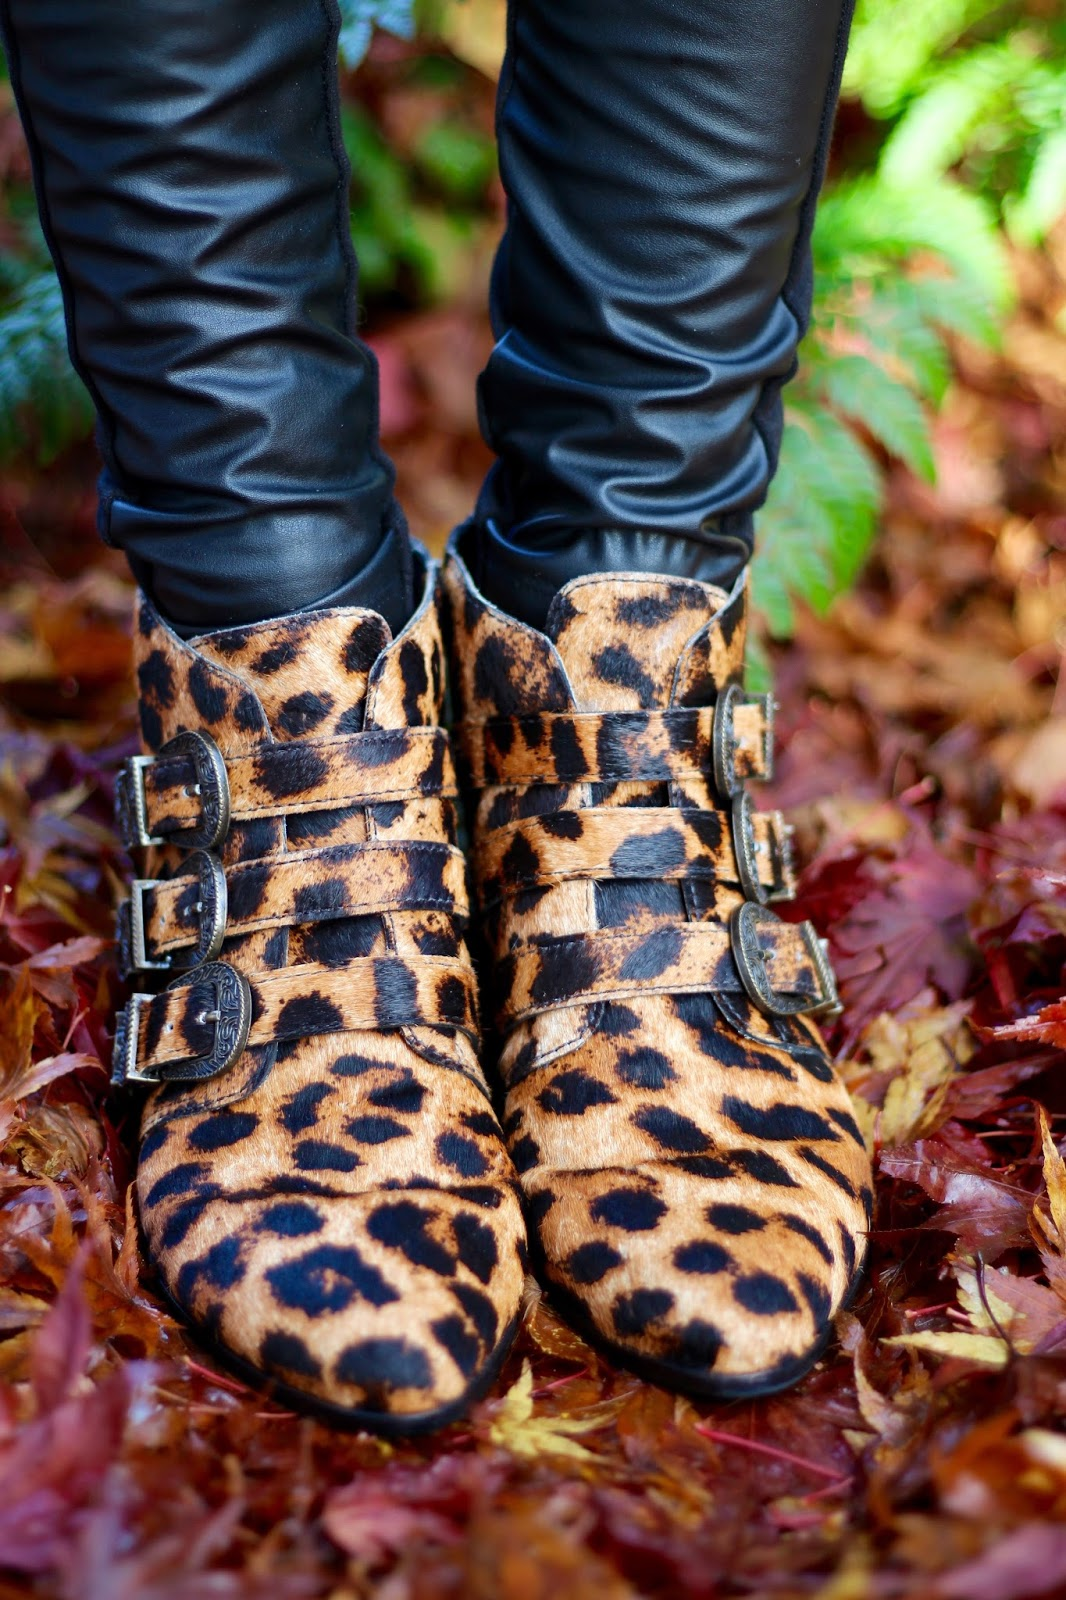 Leather Trousers and Leopard Print, over 40 | What a Cliché | Fake Fabulous